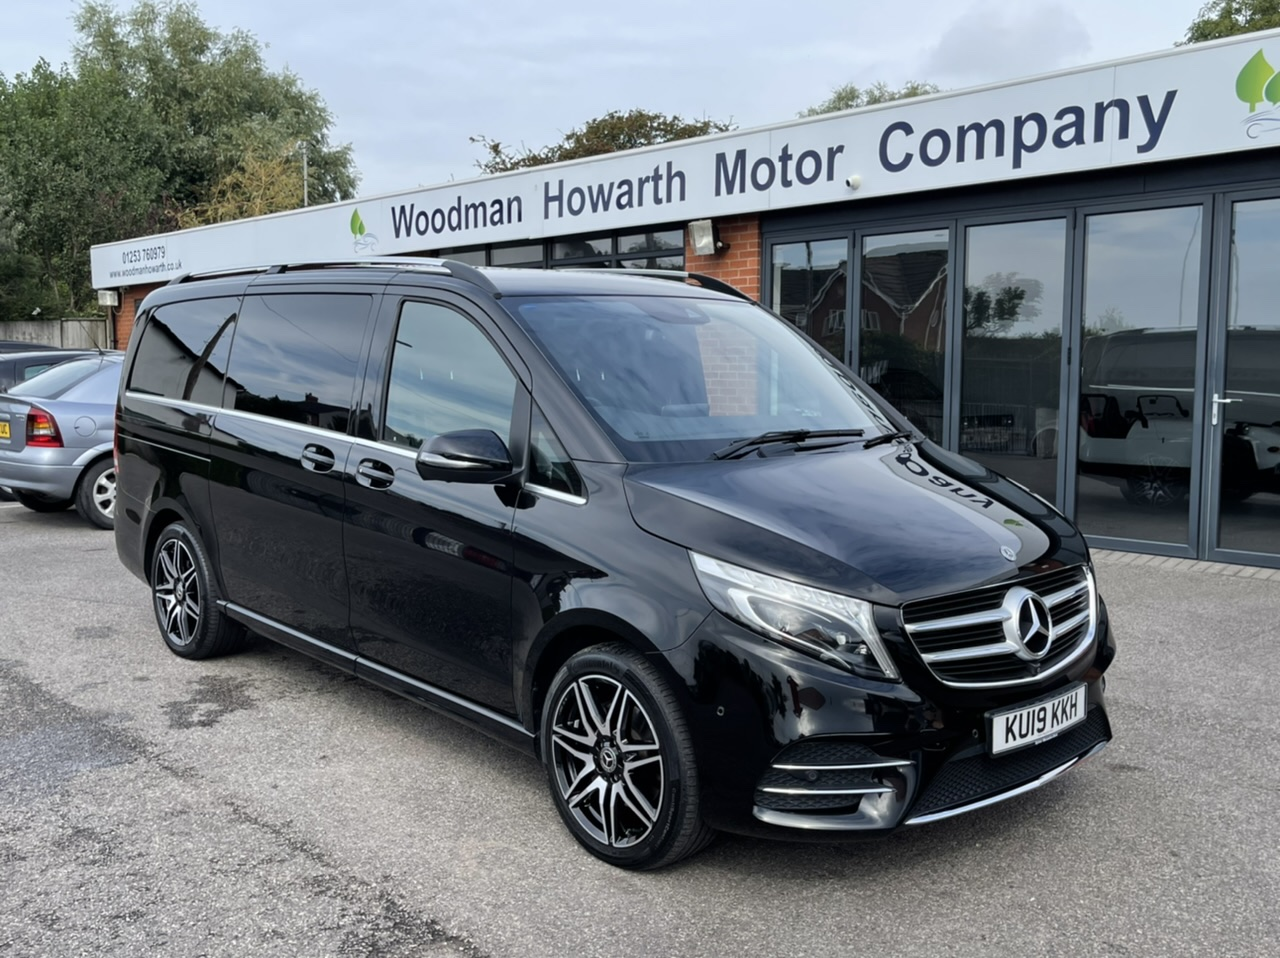 2019 19 MERCEDES BENZ V220D 163BHP AMG LINE LWB 7G-TRONIC AUTO - 8 Seater - COMAND - Memory Pack Electric Seats - 360 Cameras